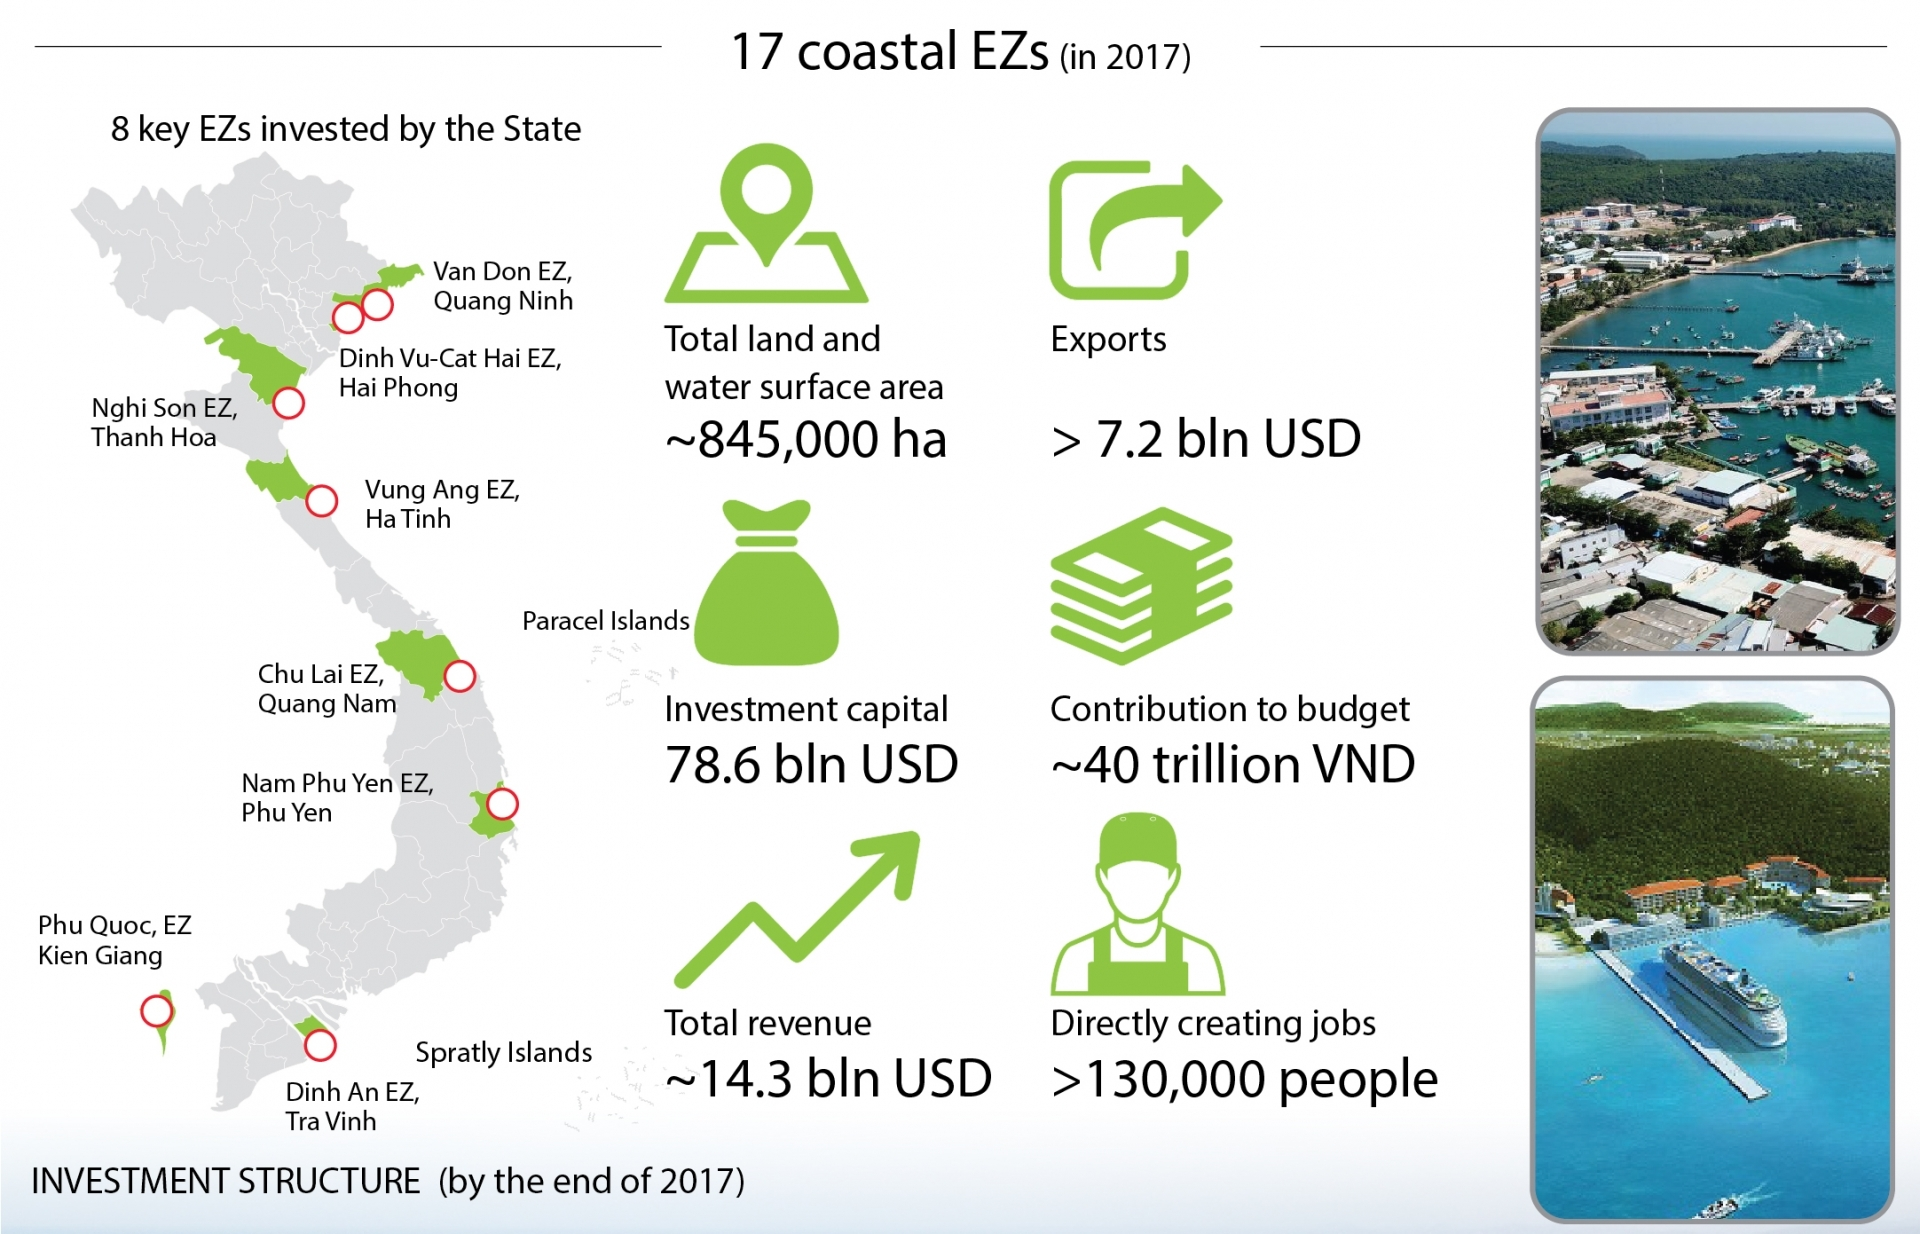 coastal economic zones greatly contribute to economic growth